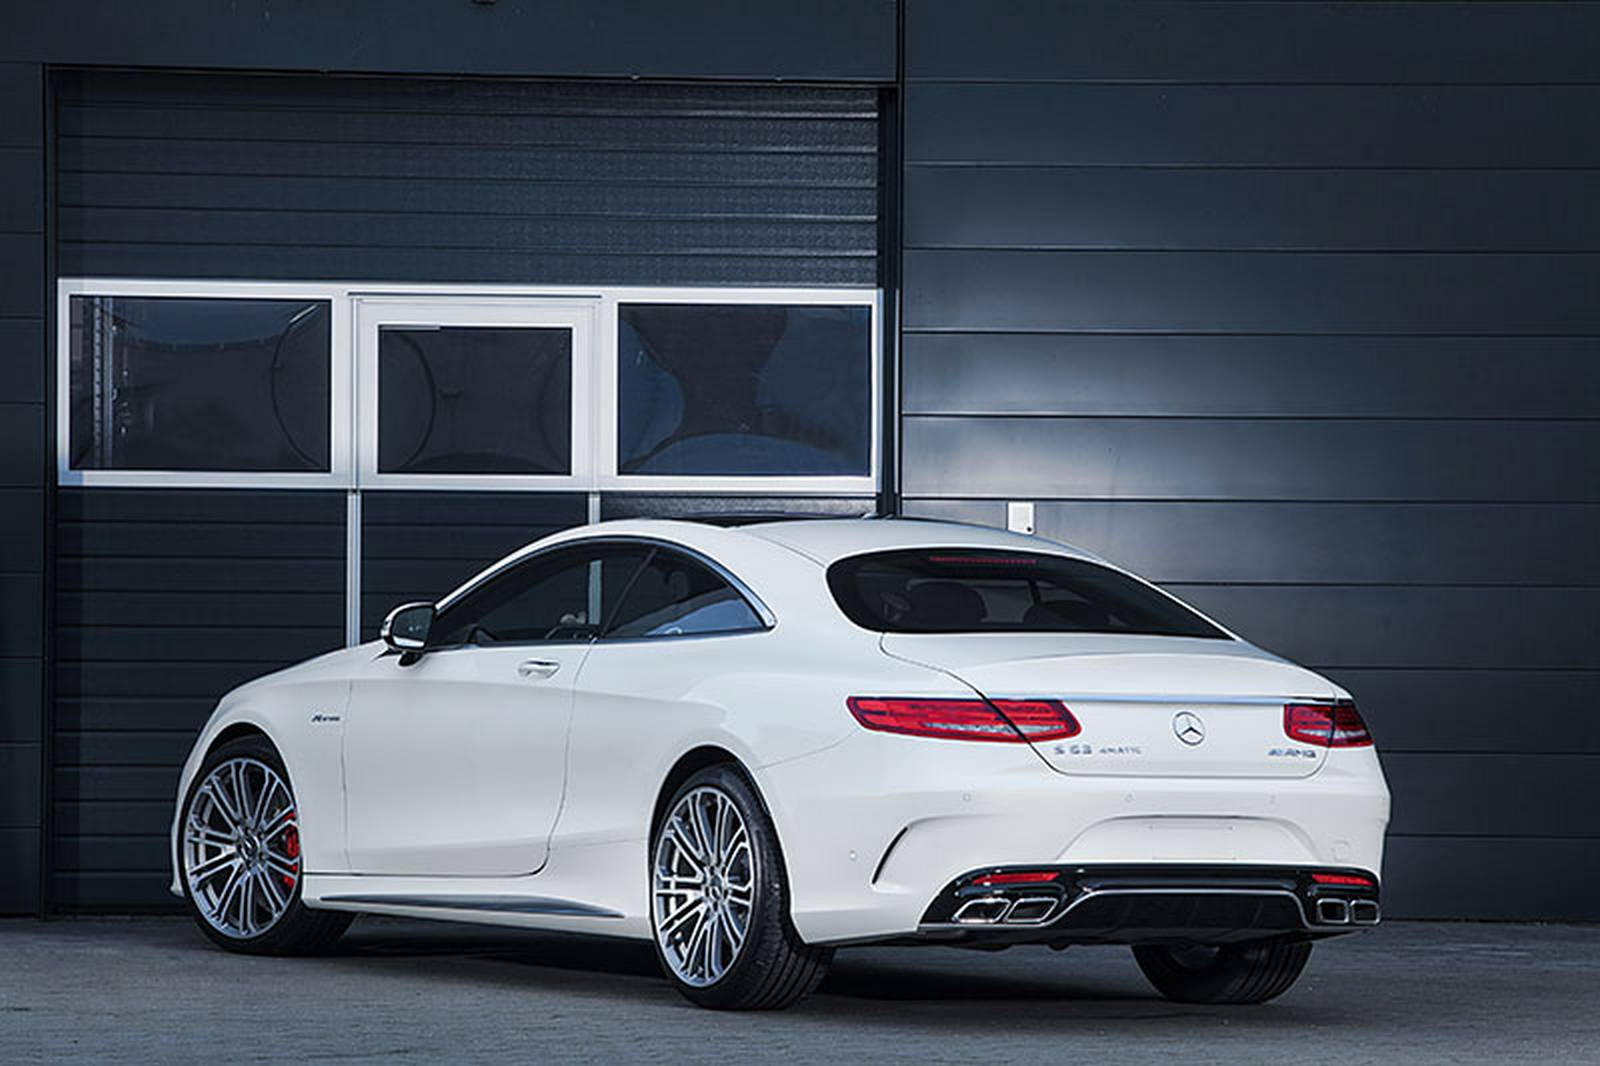 Official 720hp mercedes benz s63 amg coupe by imsa gtspirit for Mercedes benz s 63 amg